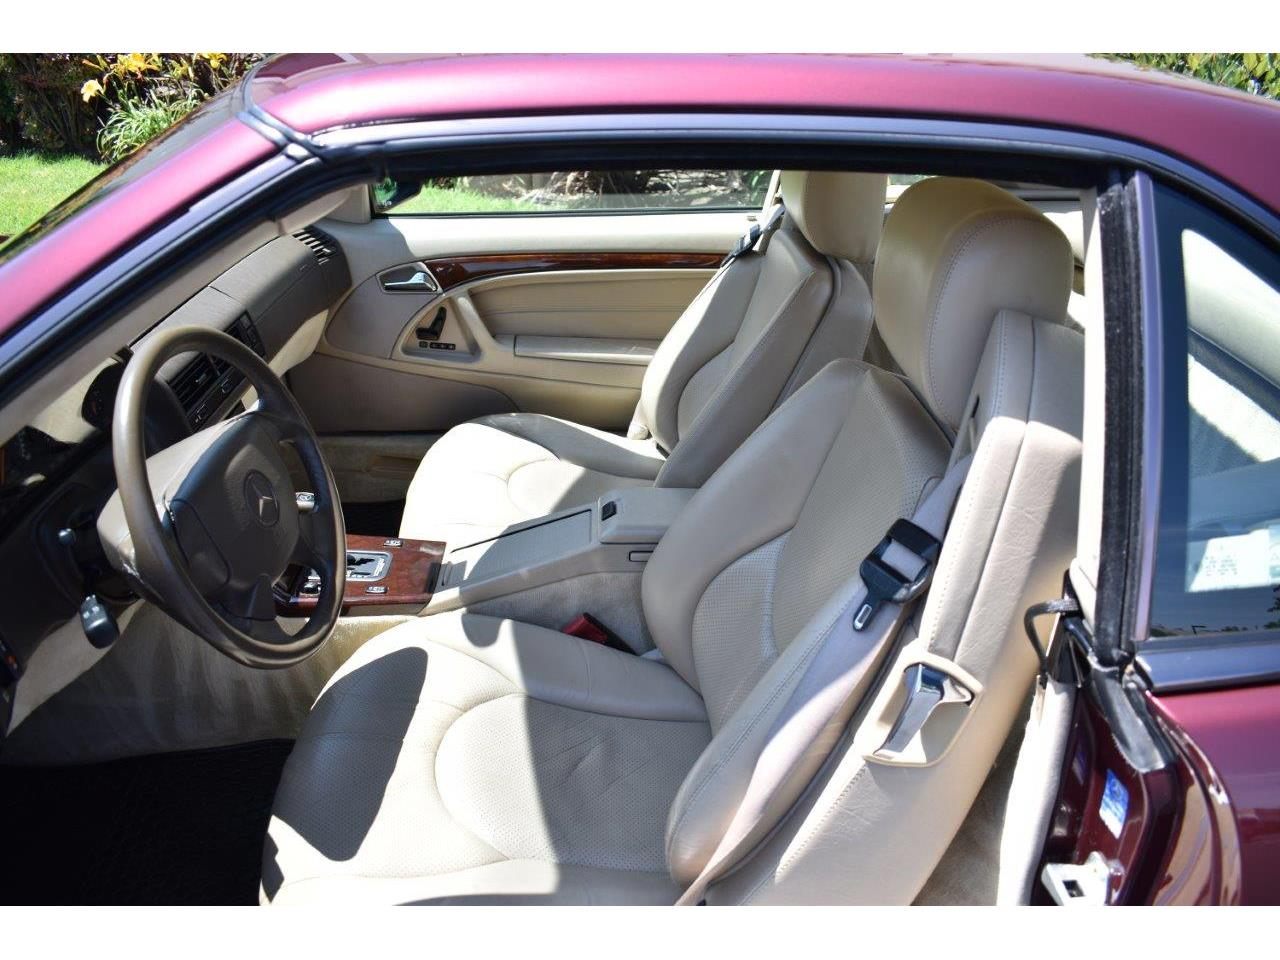 1996 Mercedes-Benz 500SL for sale in Costa Mesa, CA – photo 11